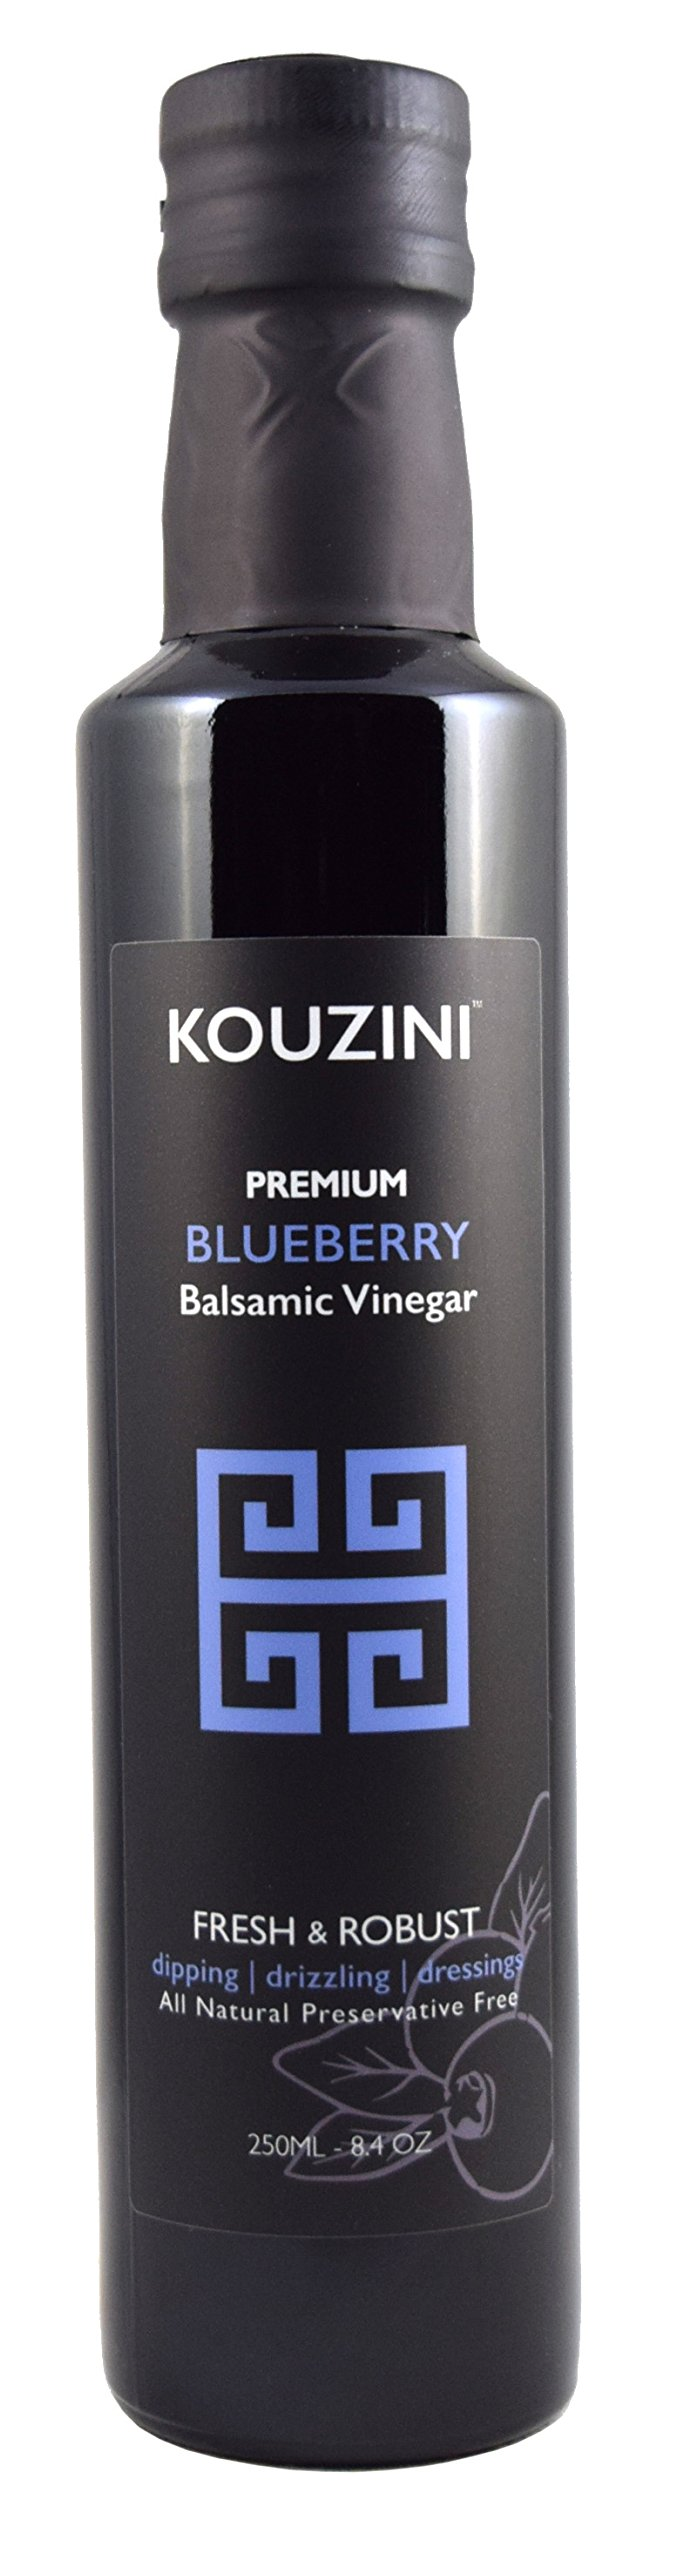 Kouzini Ultra Premium Blueberry Balsamic Vinegar (250ML Bottle)